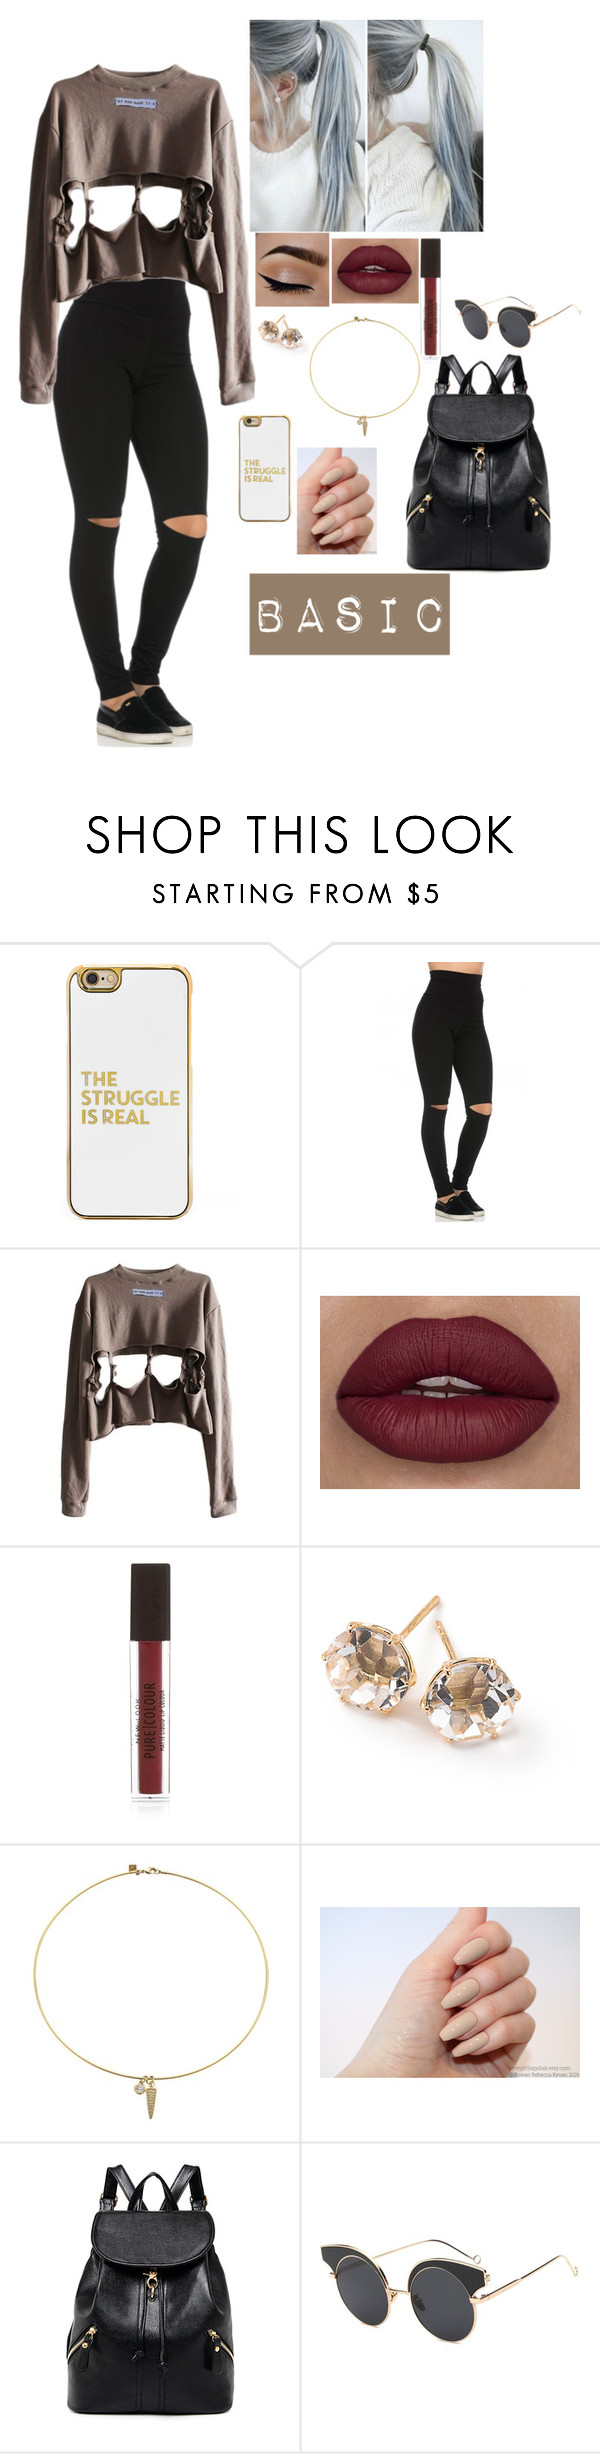 """""""Untitled #707"""" by jaritza-hemmings ❤ liked on Polyvore featuring BaubleBar, New Look, Ippolita and Rebecca Minkoff"""